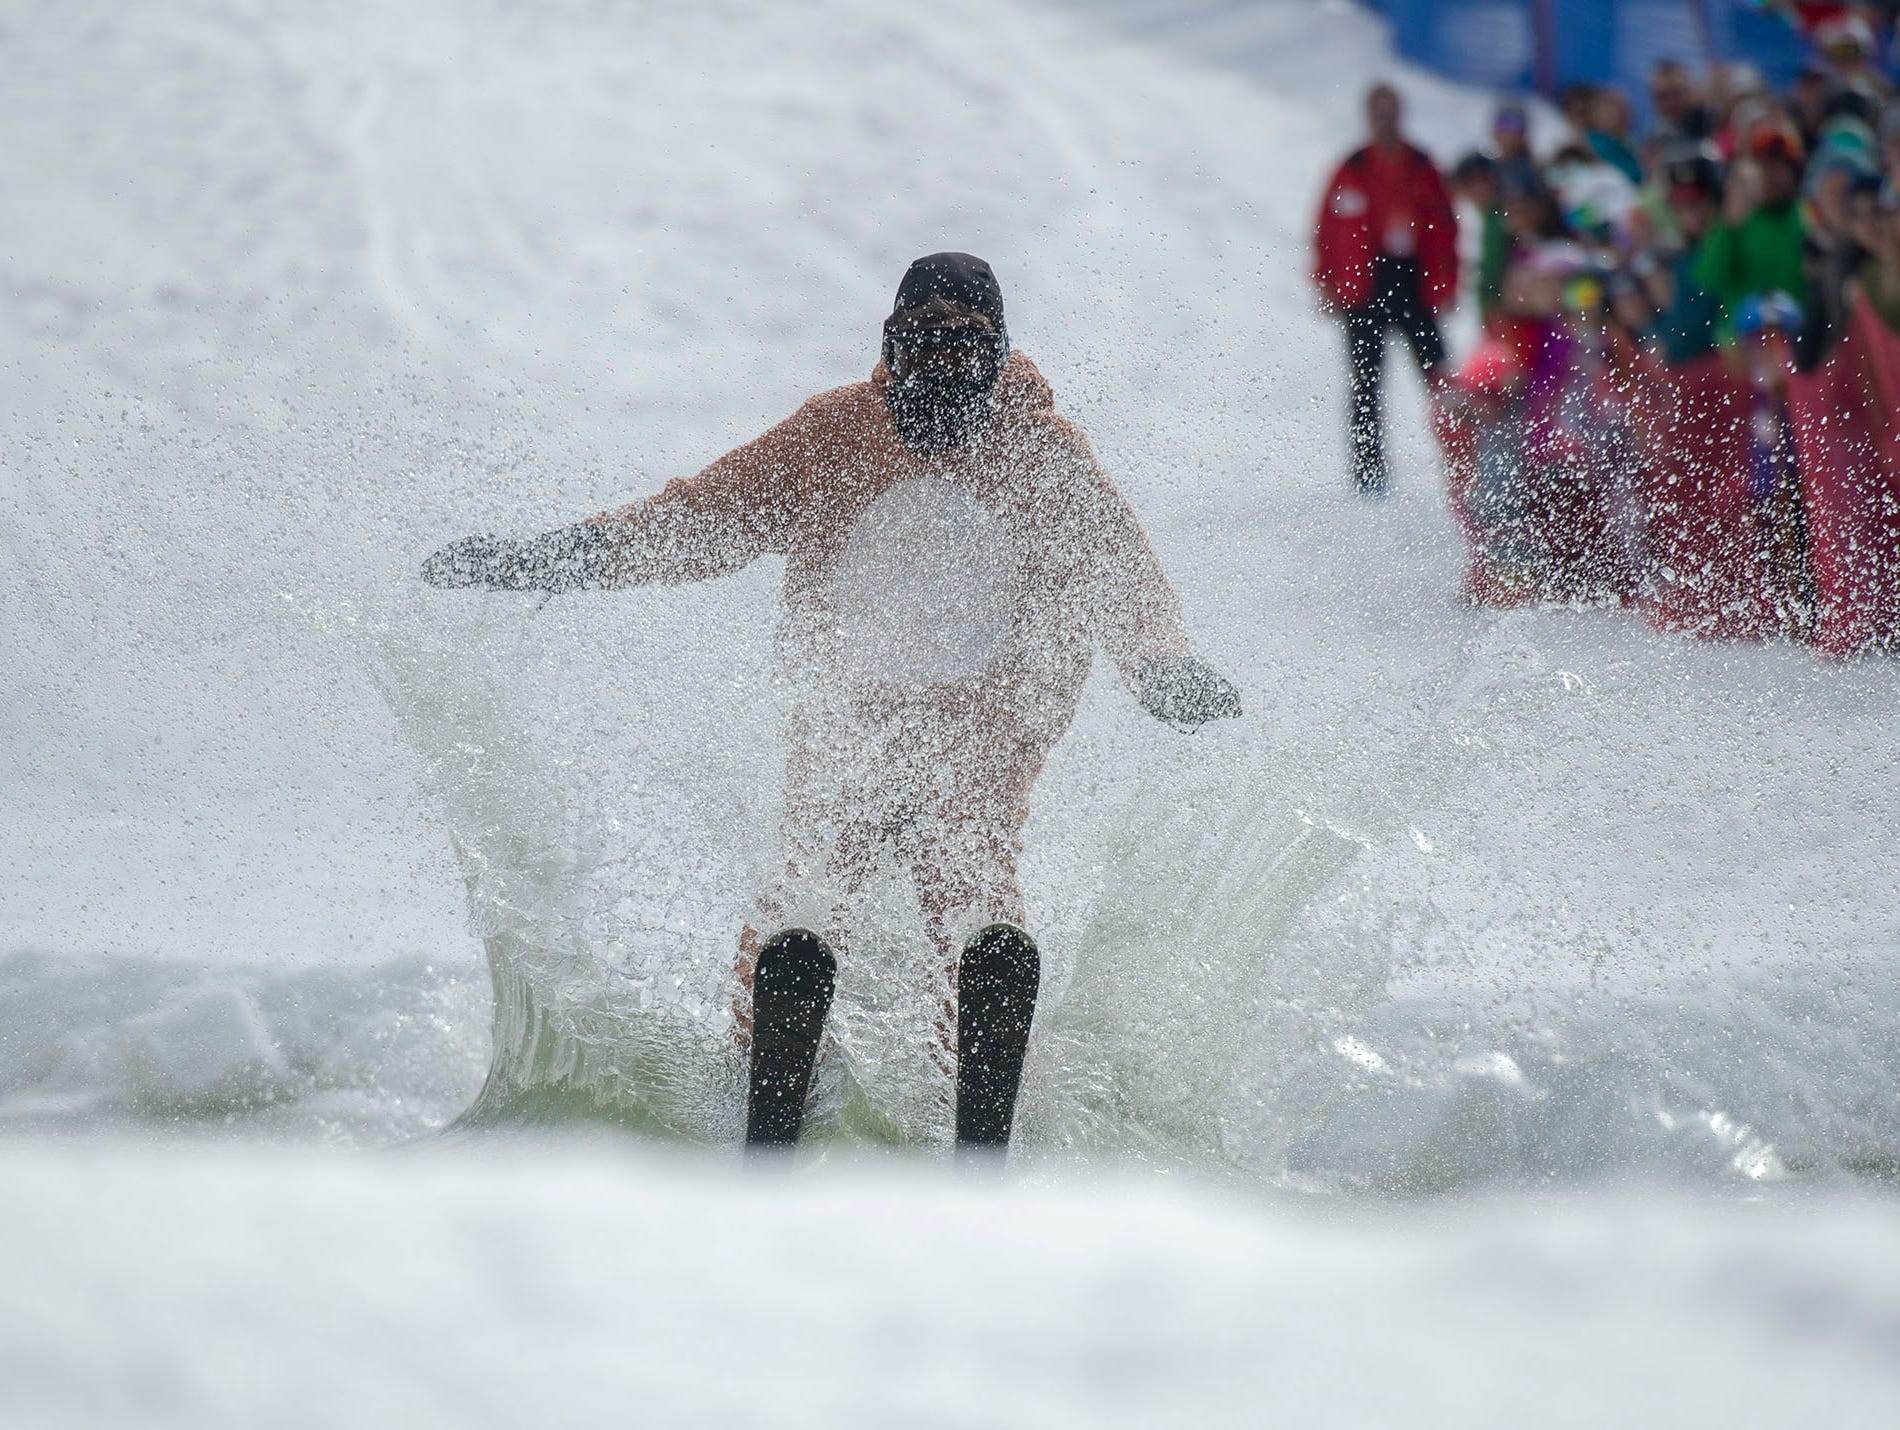 This participant almost made the entire way across the approximately 80-foot pond at Roundtop Mountain Resort on Saturday, March 16, 2019.